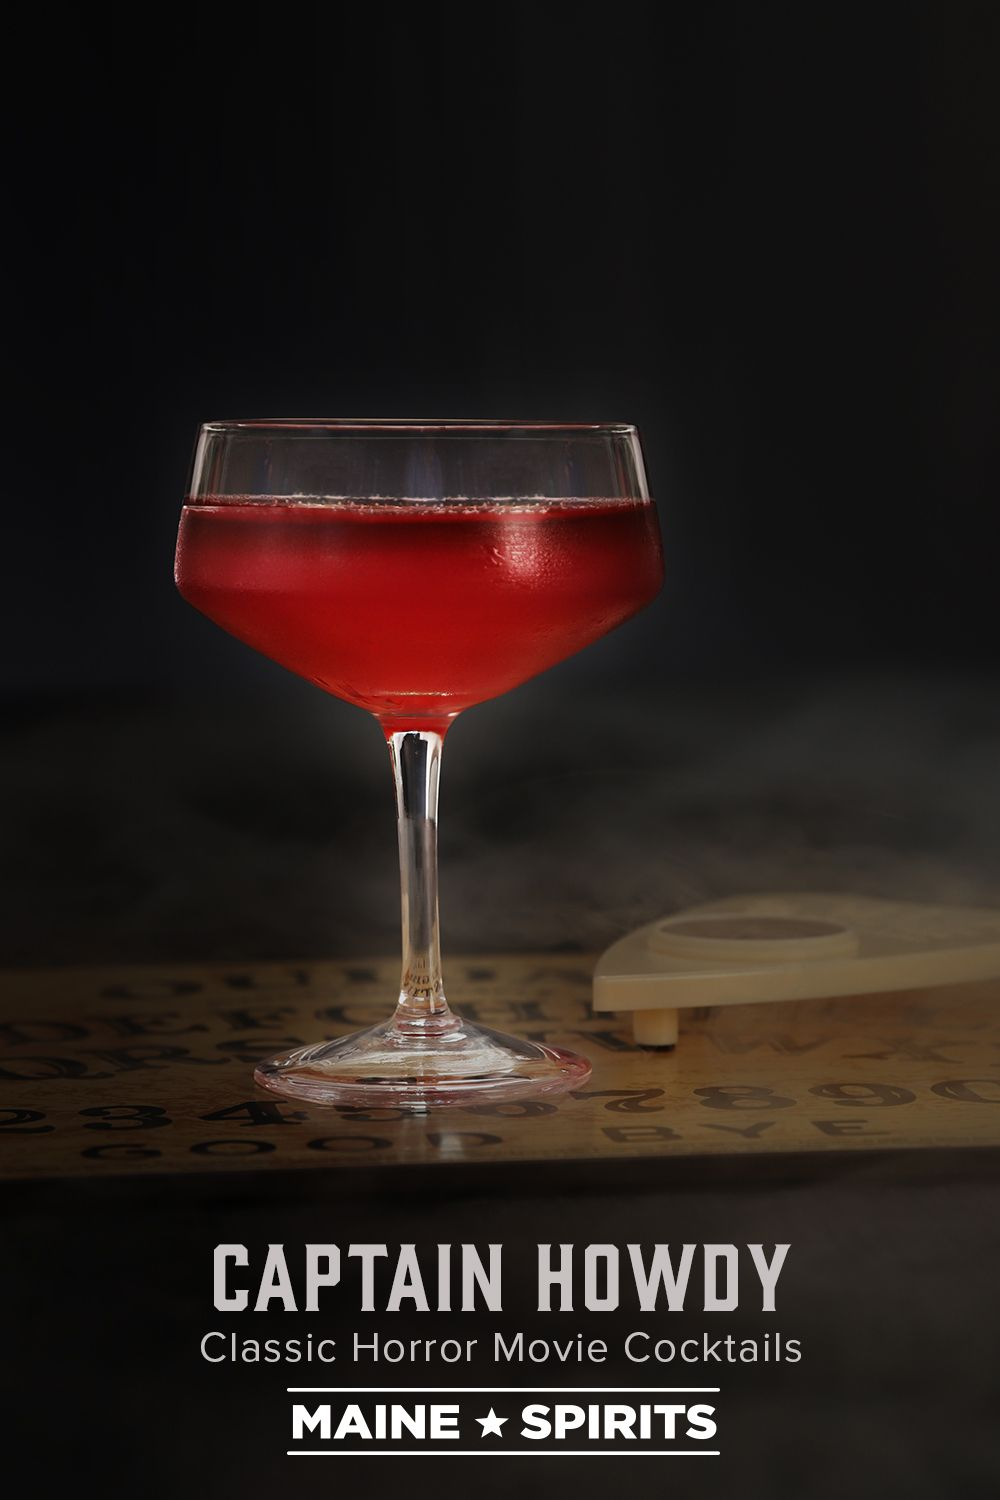 Pin On Classic Horror Movie Cocktails